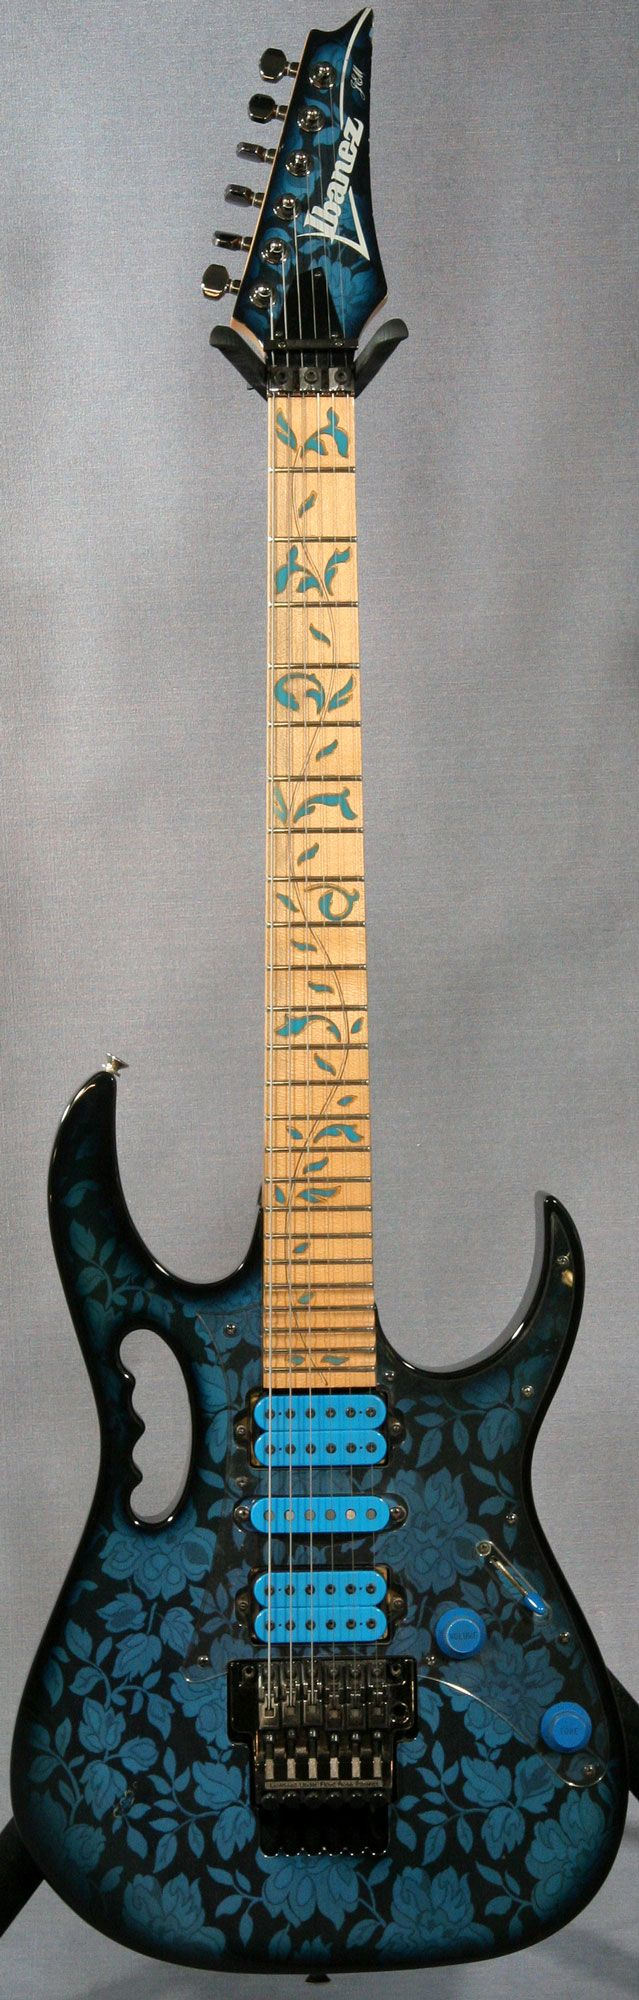 Always wanted an Ibanez, especially love this beauty! Ibanez Jem